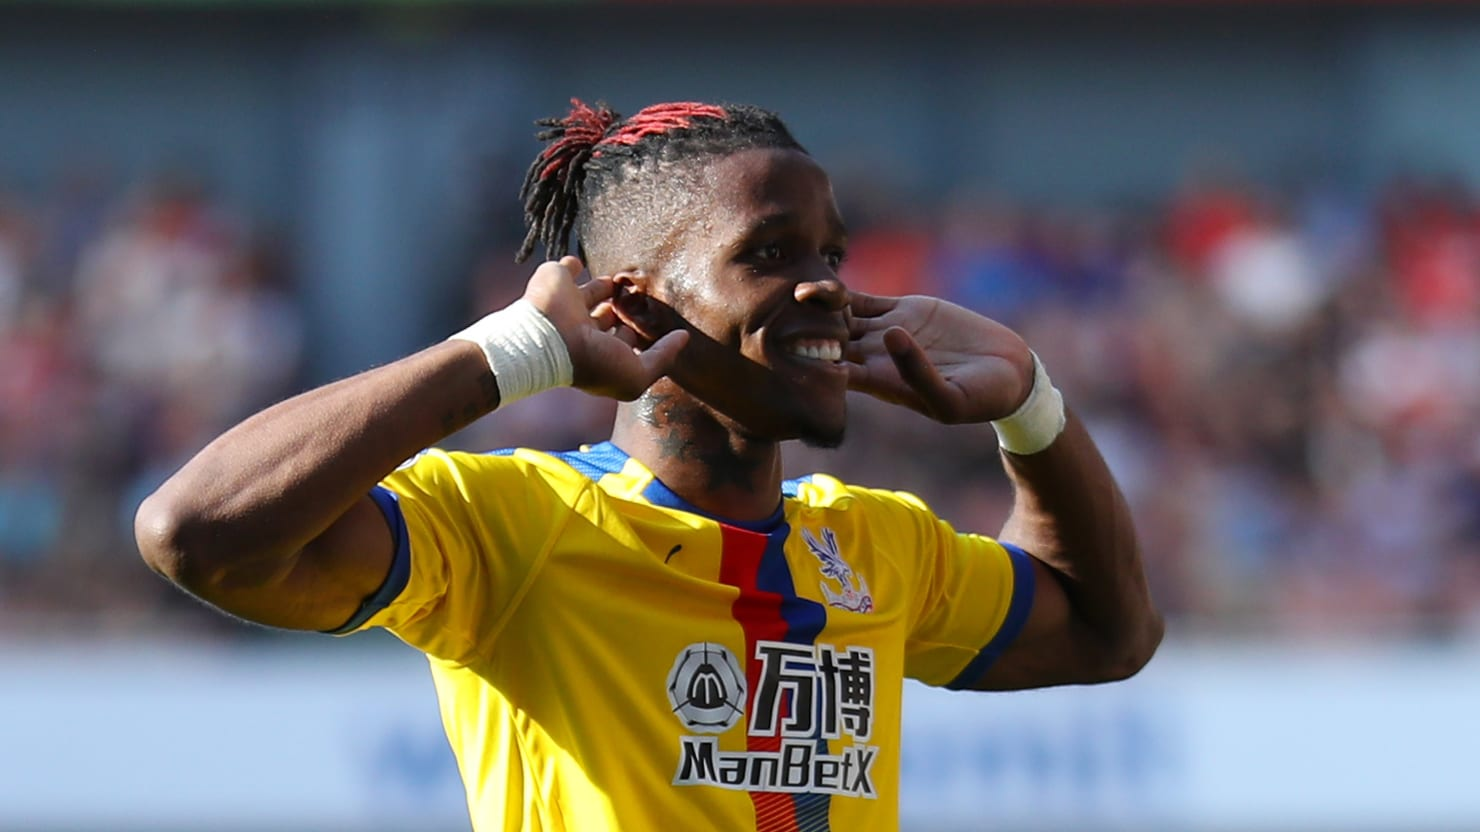 12-Year-Old Arrested for Racist Posts Targeting Soccer Star Wilfried Zaha